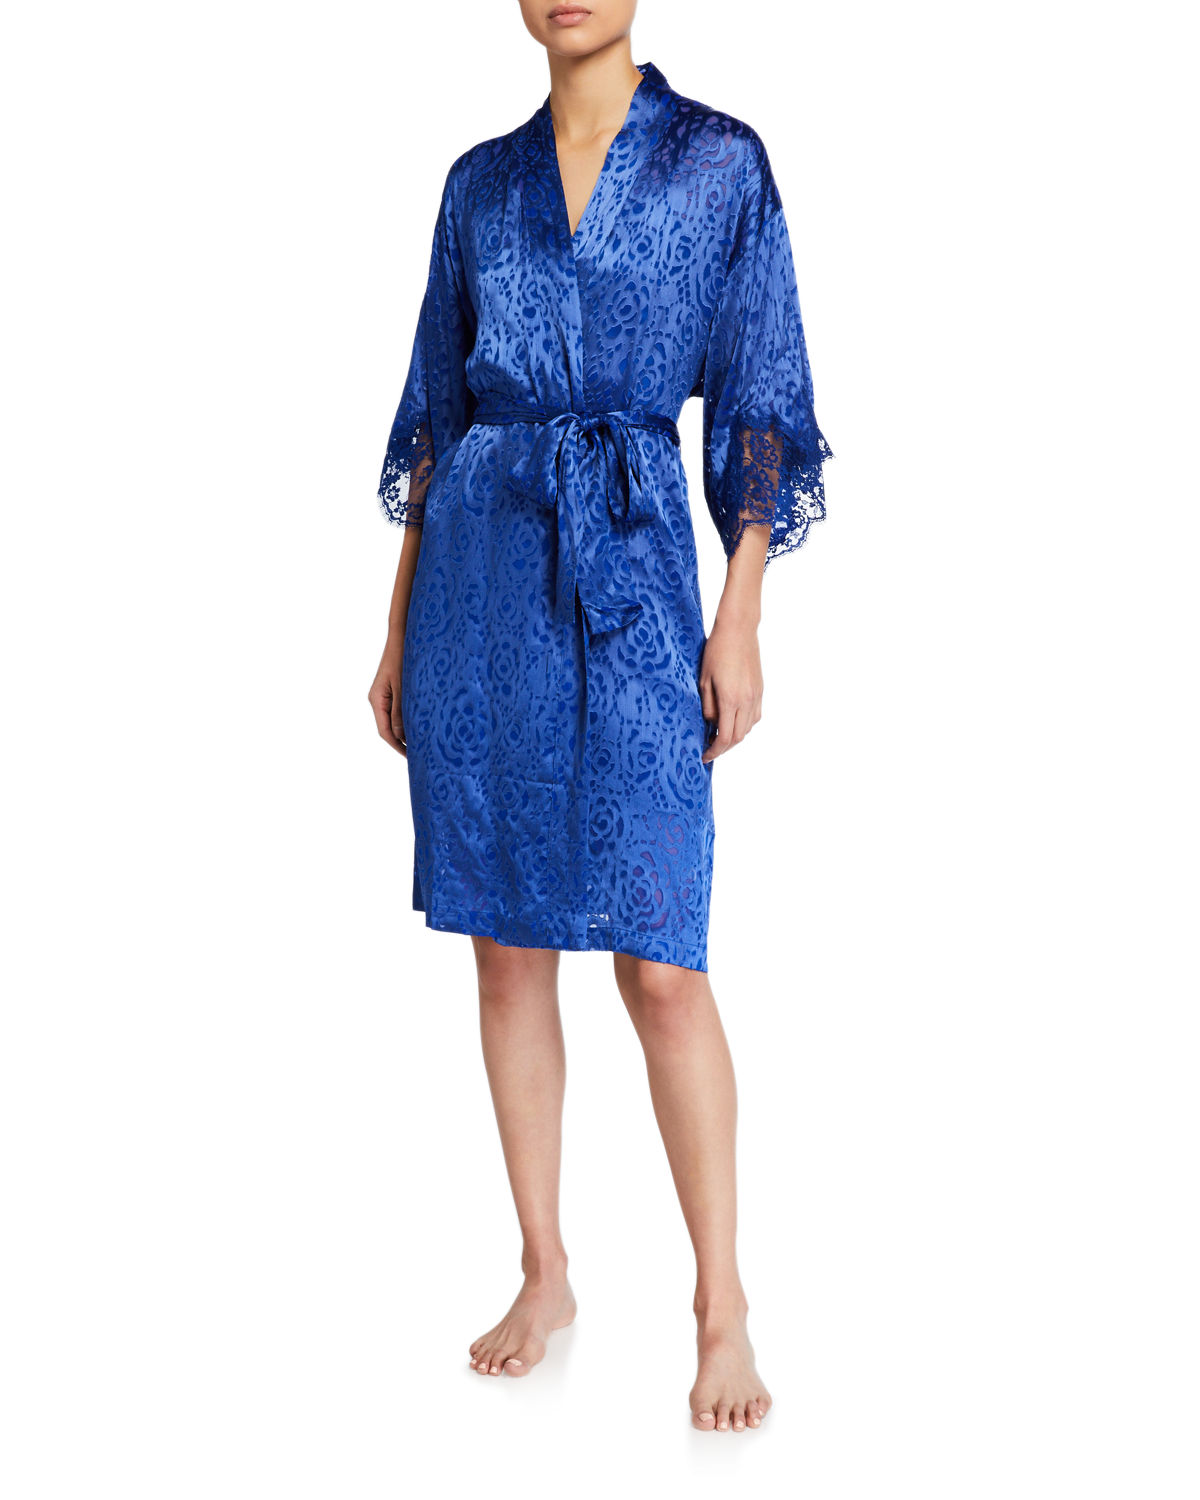 Dressing Solaire Floral Lace Robe